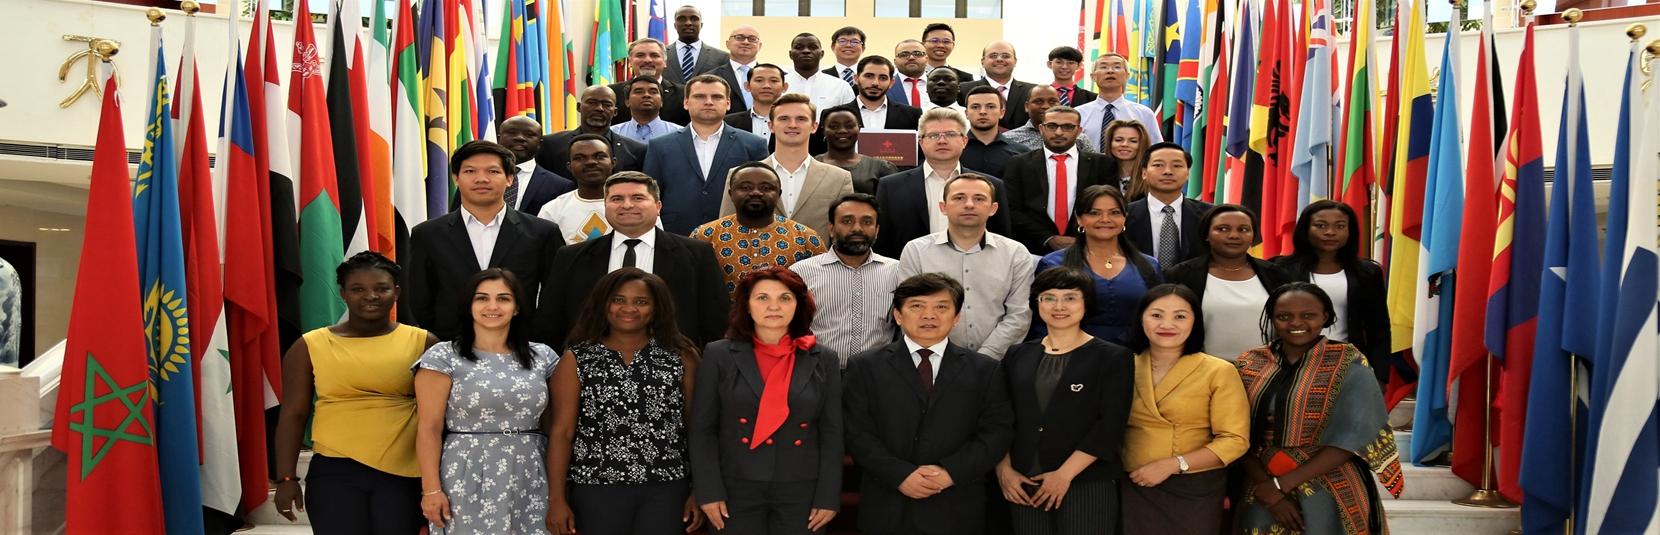 2019 Seminar for Officials & Business Leaders of Developing Countries Involved in Telecommunications & IT Industry